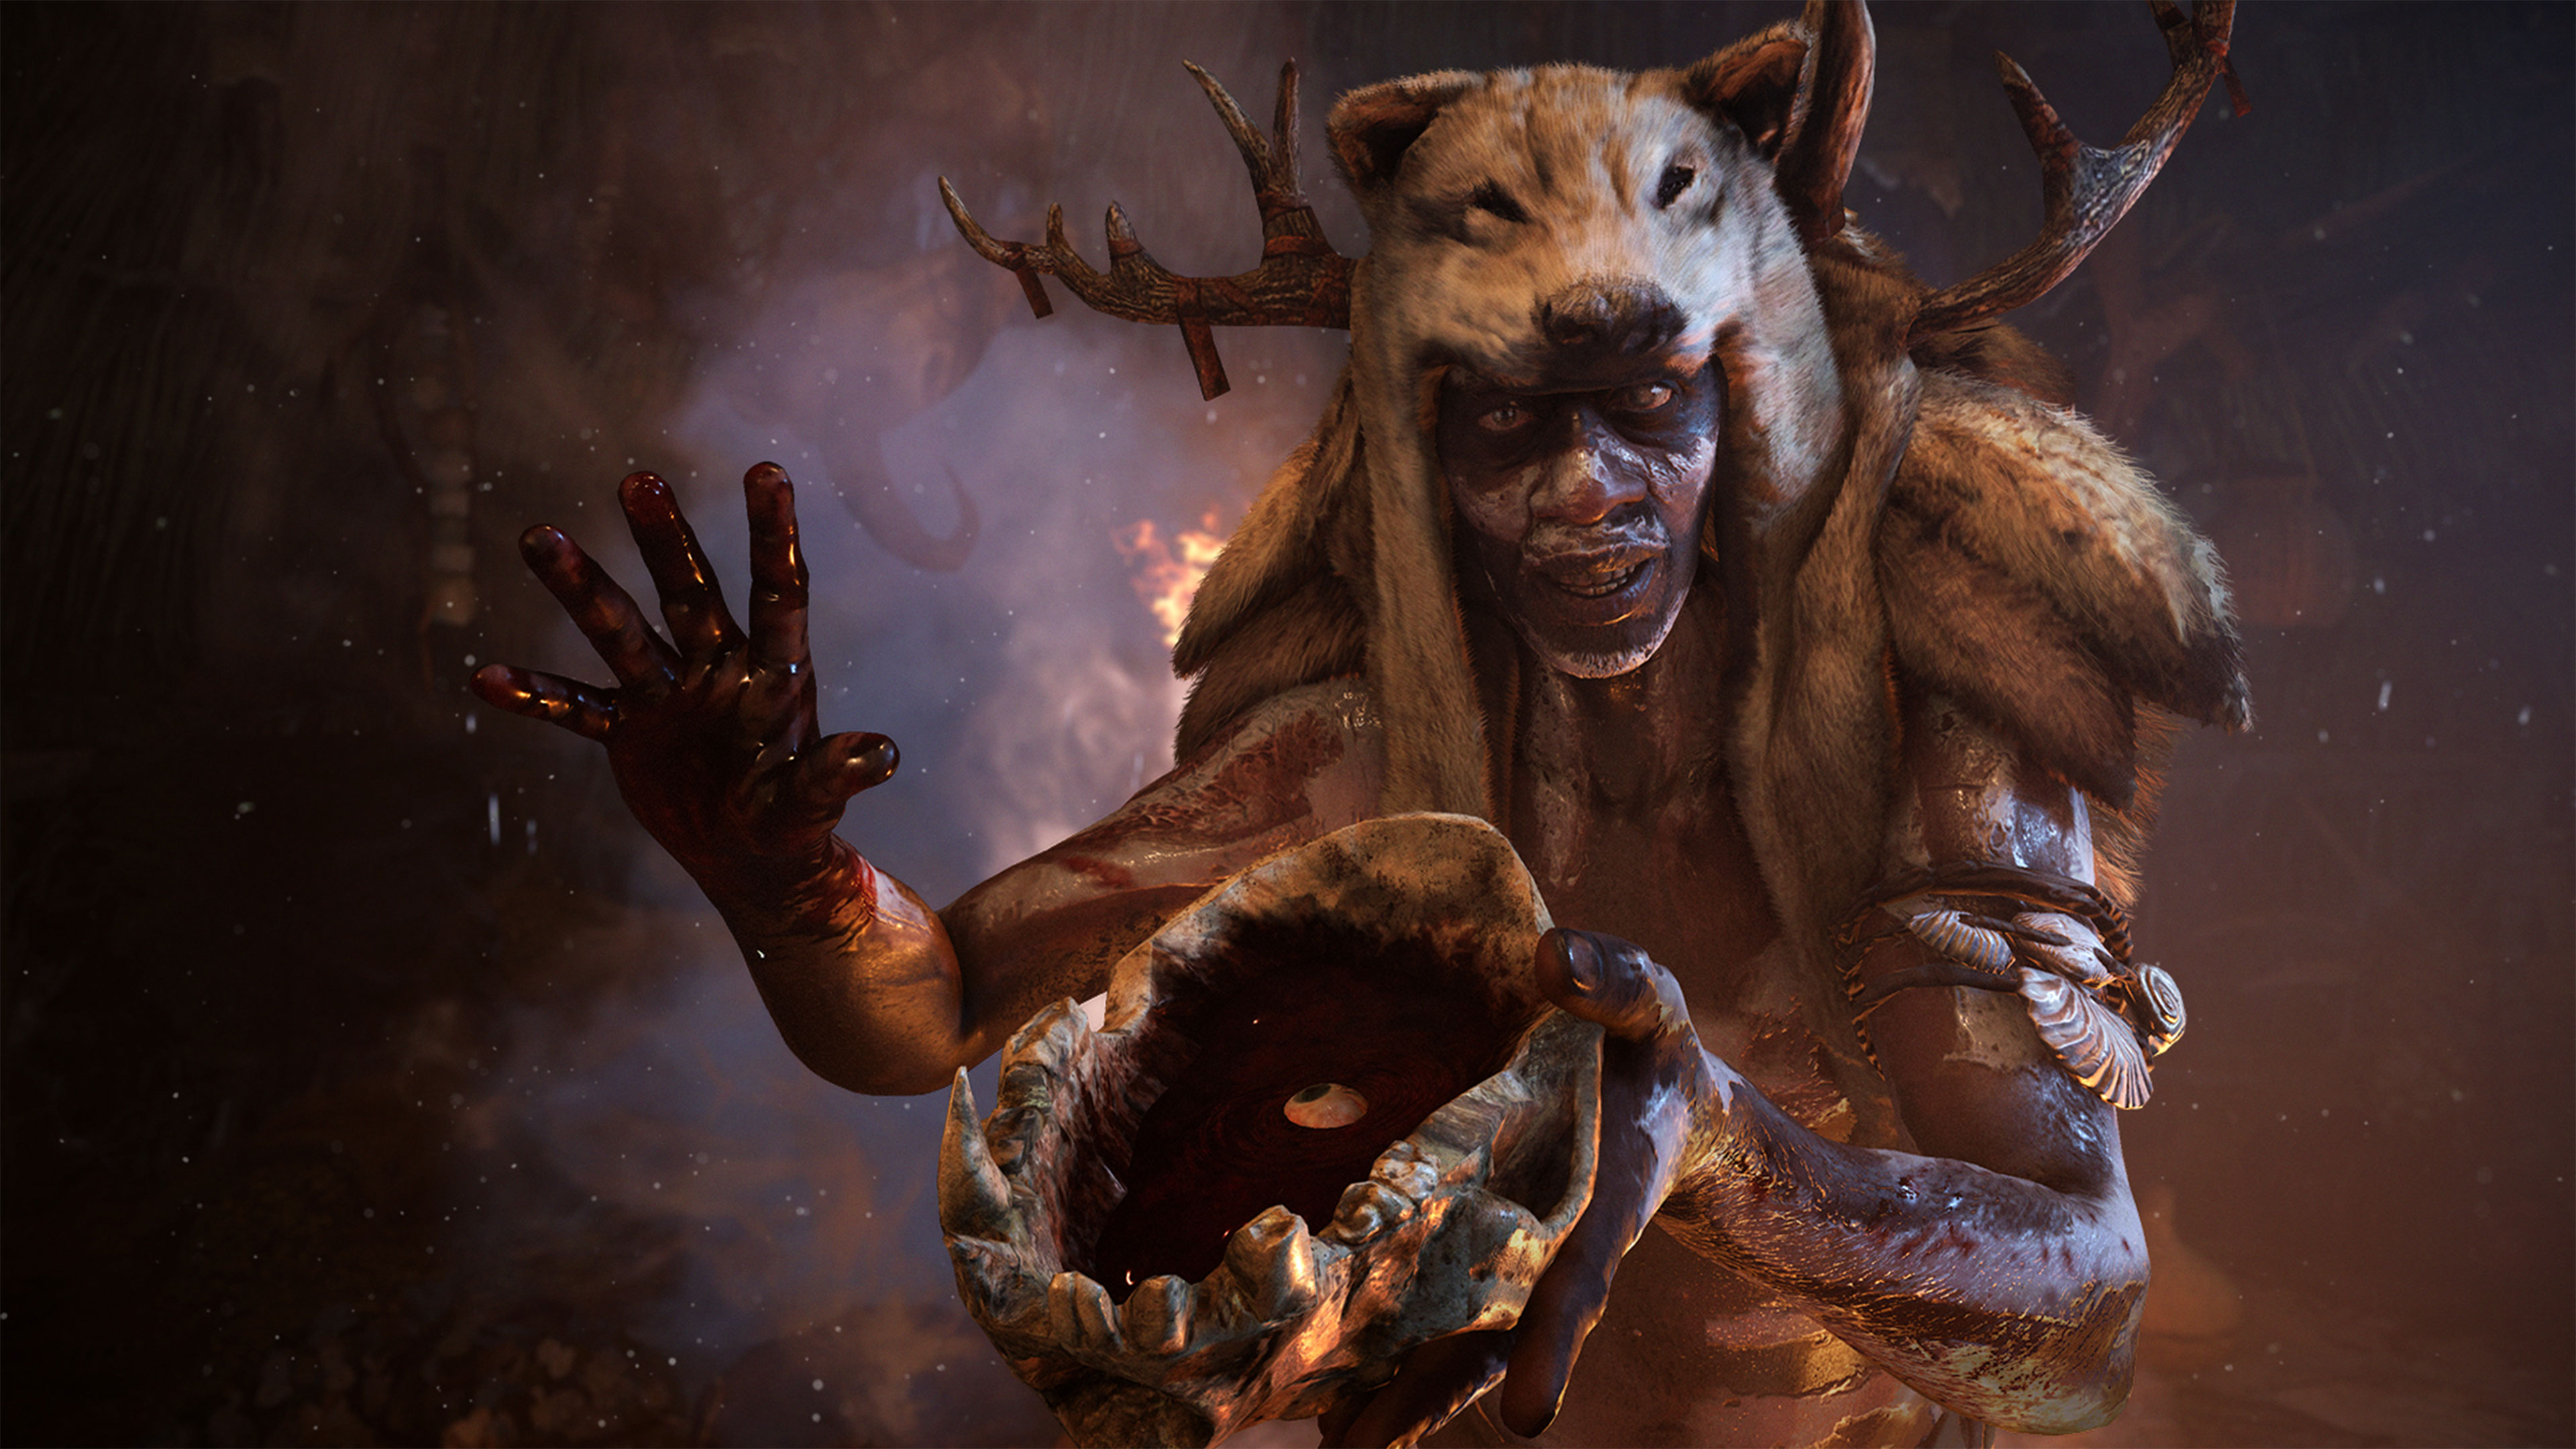 Far Cry Primal Wallpapers In Ultra Hd 4k Gameranx